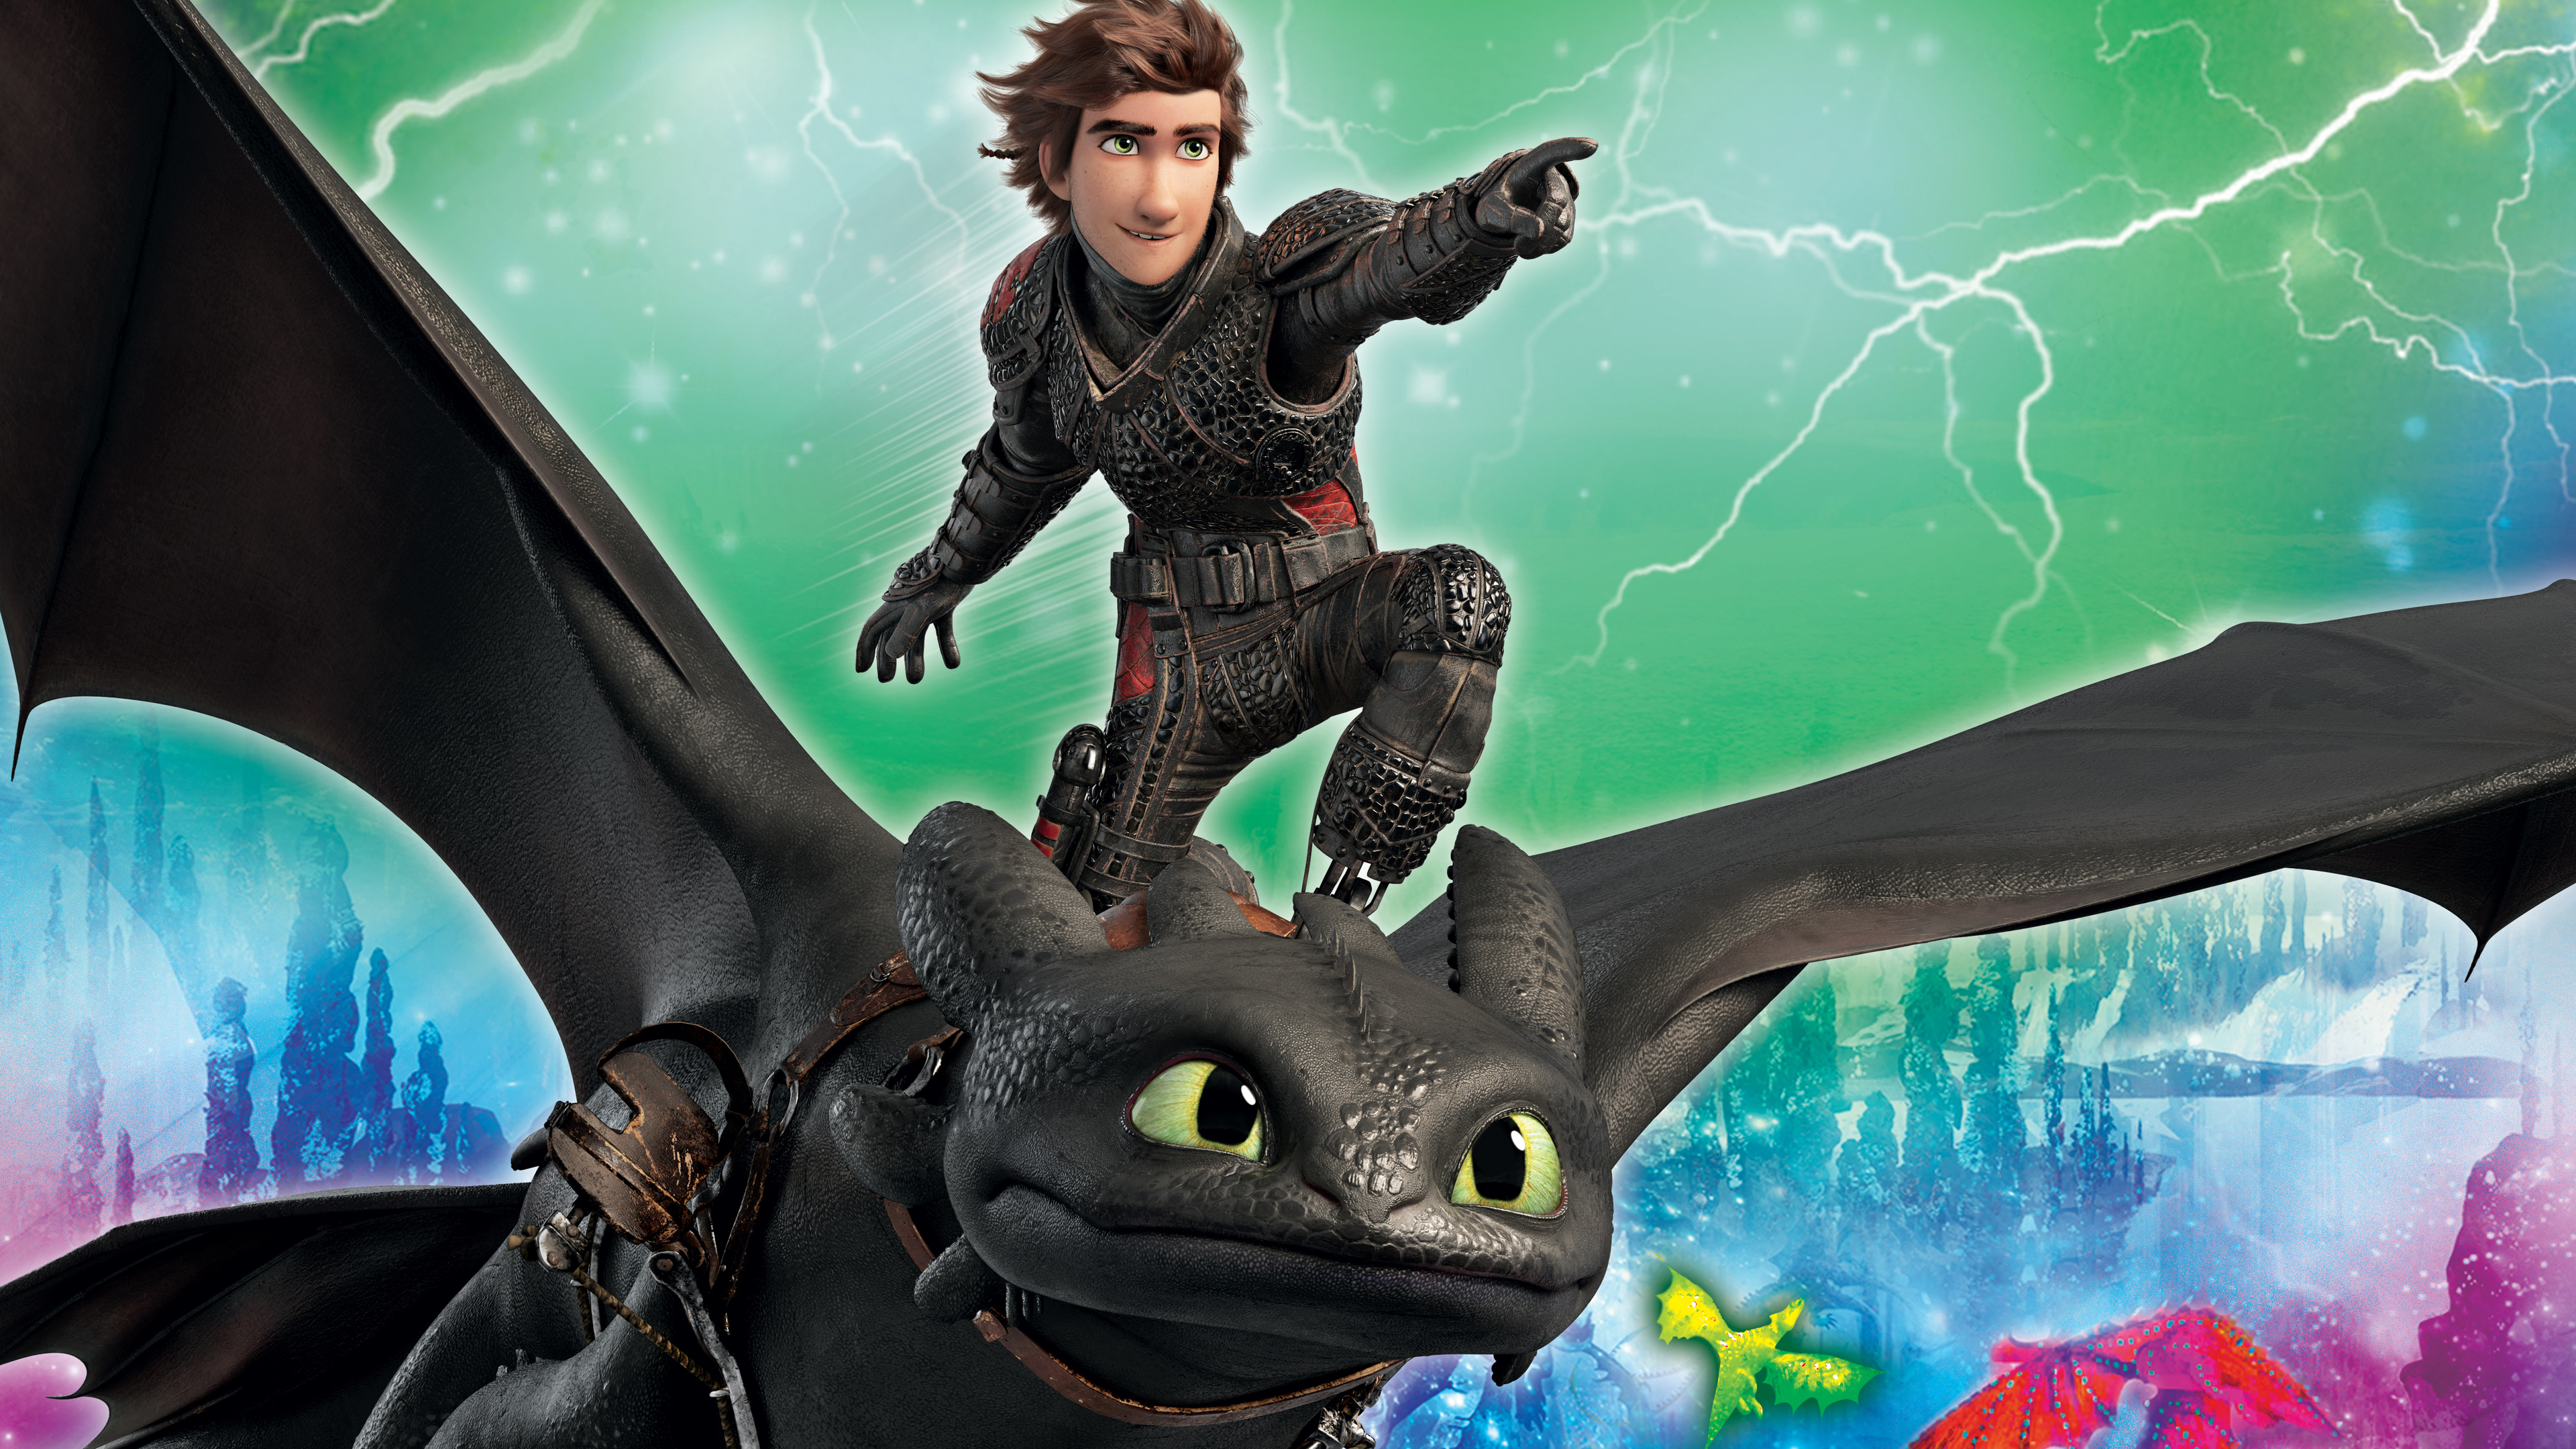 how to train your dragon 4k 1555208715 - How To Train Your Dragon 4k - movies wallpapers, how to train your dragon wallpapers, how to train your dragon the hidden world wallpapers, how to train your dragon 3 wallpapers, hd-wallpapers, dragon wallpapers, animated movies wallpapers, 5k wallpapers, 4k-wallpapers, 2019 movies wallpapers